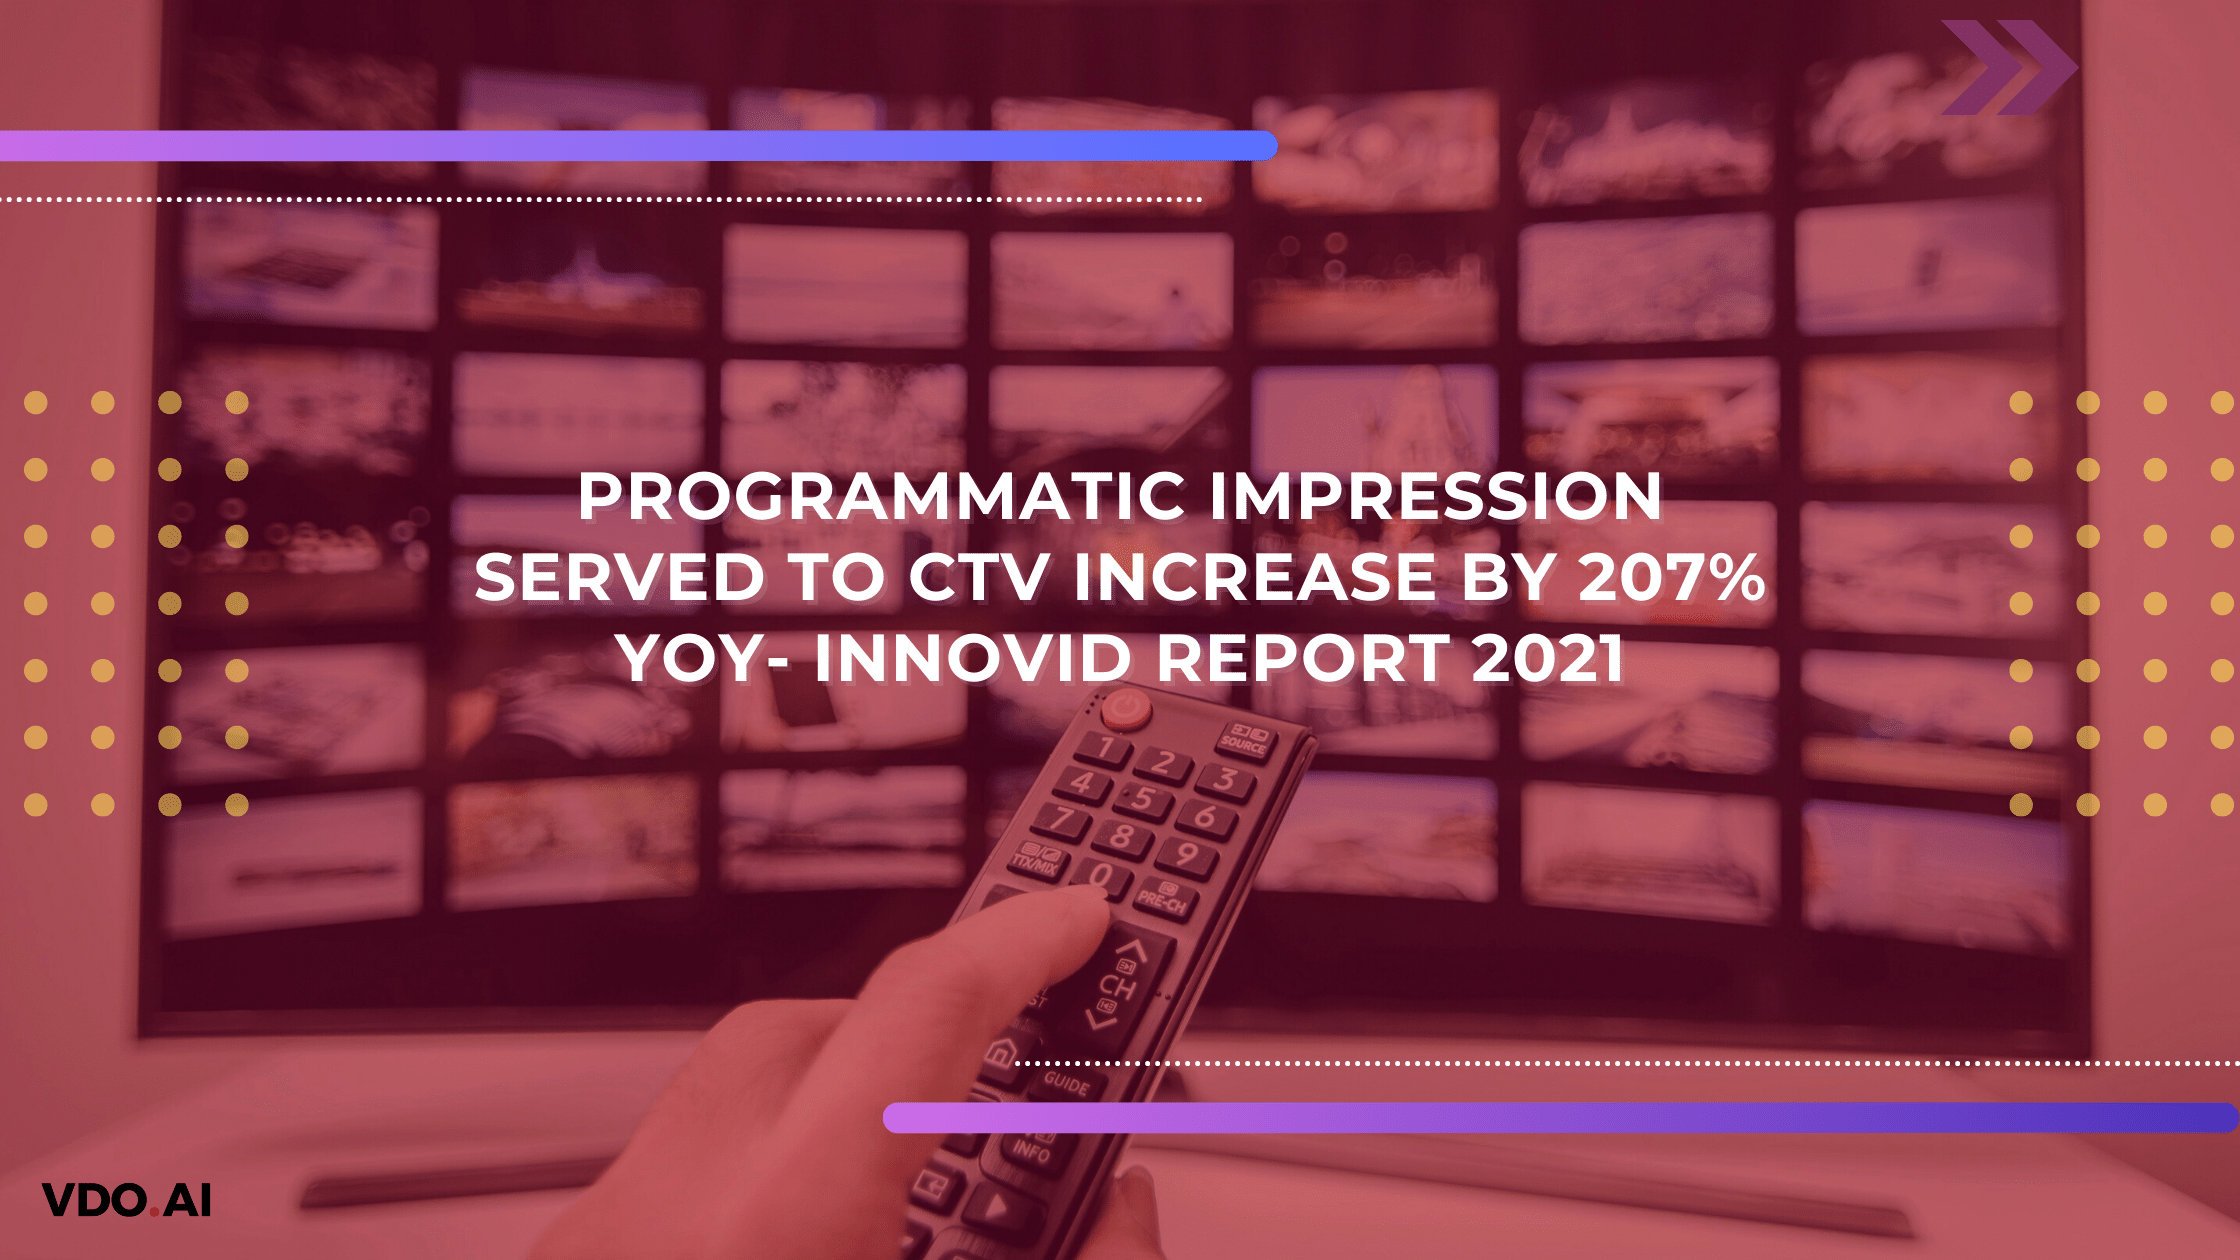 Programmatic impression served to CTV increase by 207% YOY- Innovid Report 2021